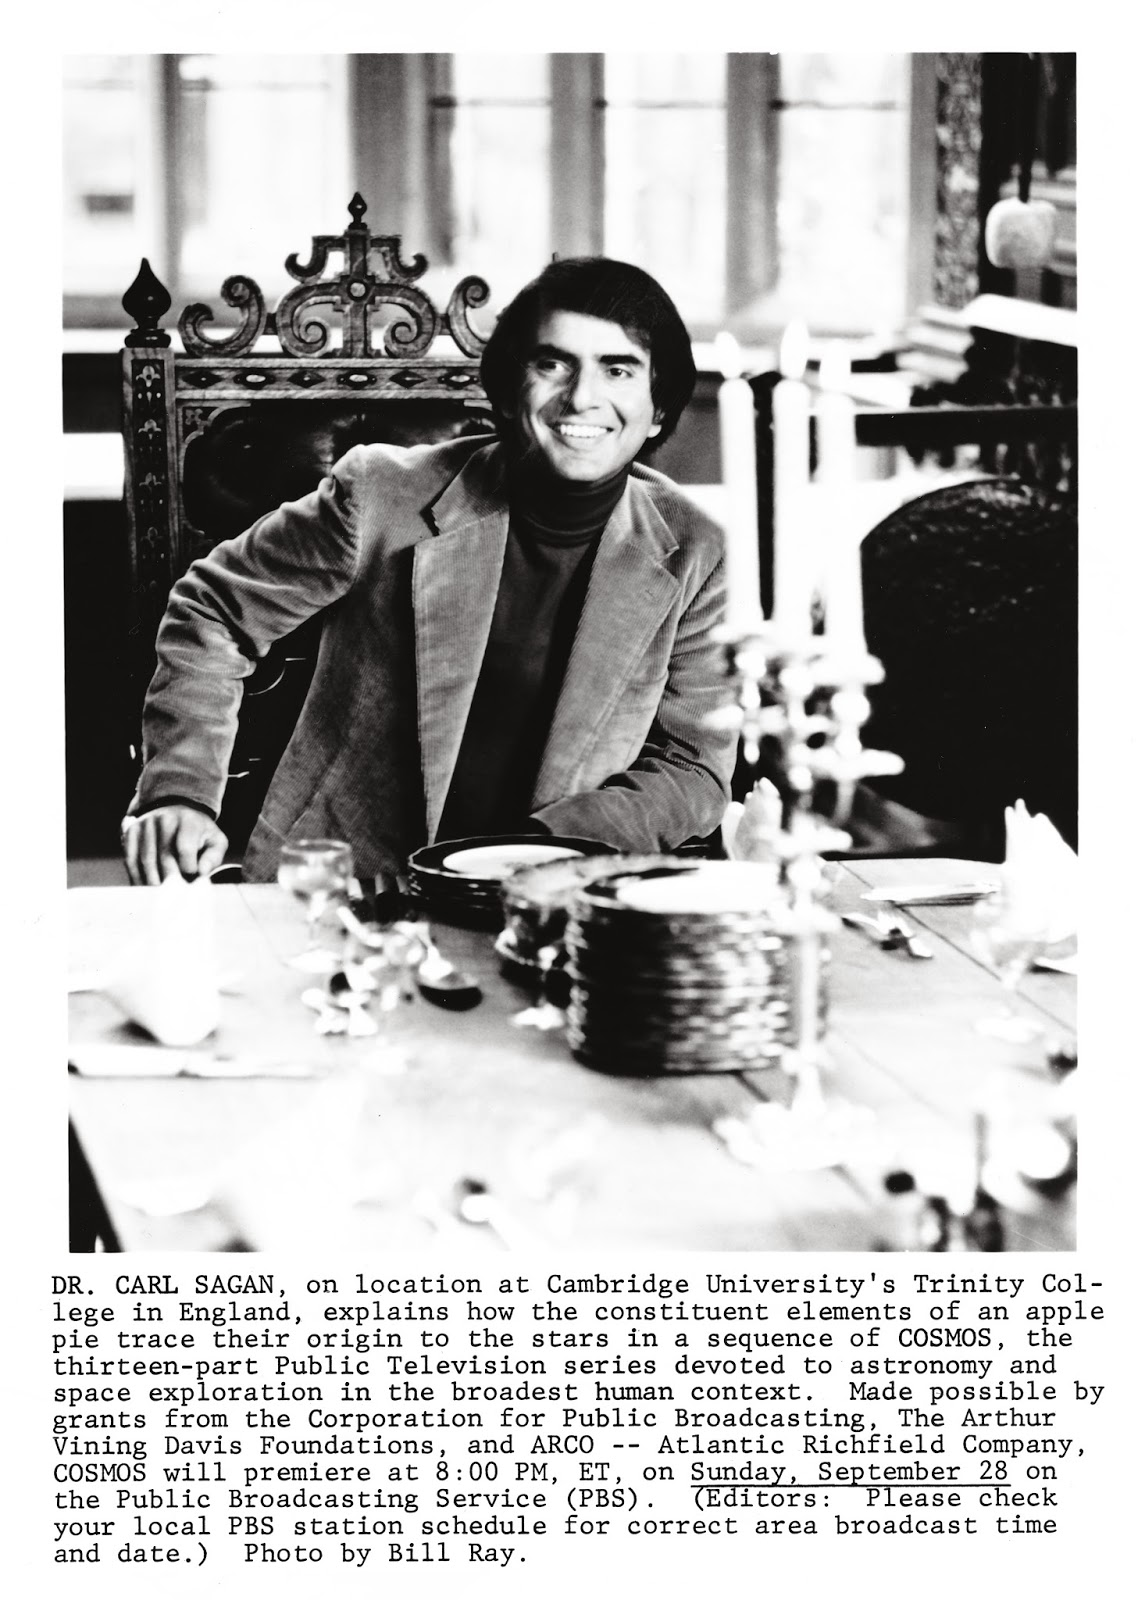 mr x carl sagan essay Mr x essay by carl sagan essay writing service mr skeptic is familiar with dennis s case and the documentation surrounding it for several years, mr skeptic published a page of mine in which i outlined the facts of the cases against dennis, referring to the exhibits in that present the government's cases.